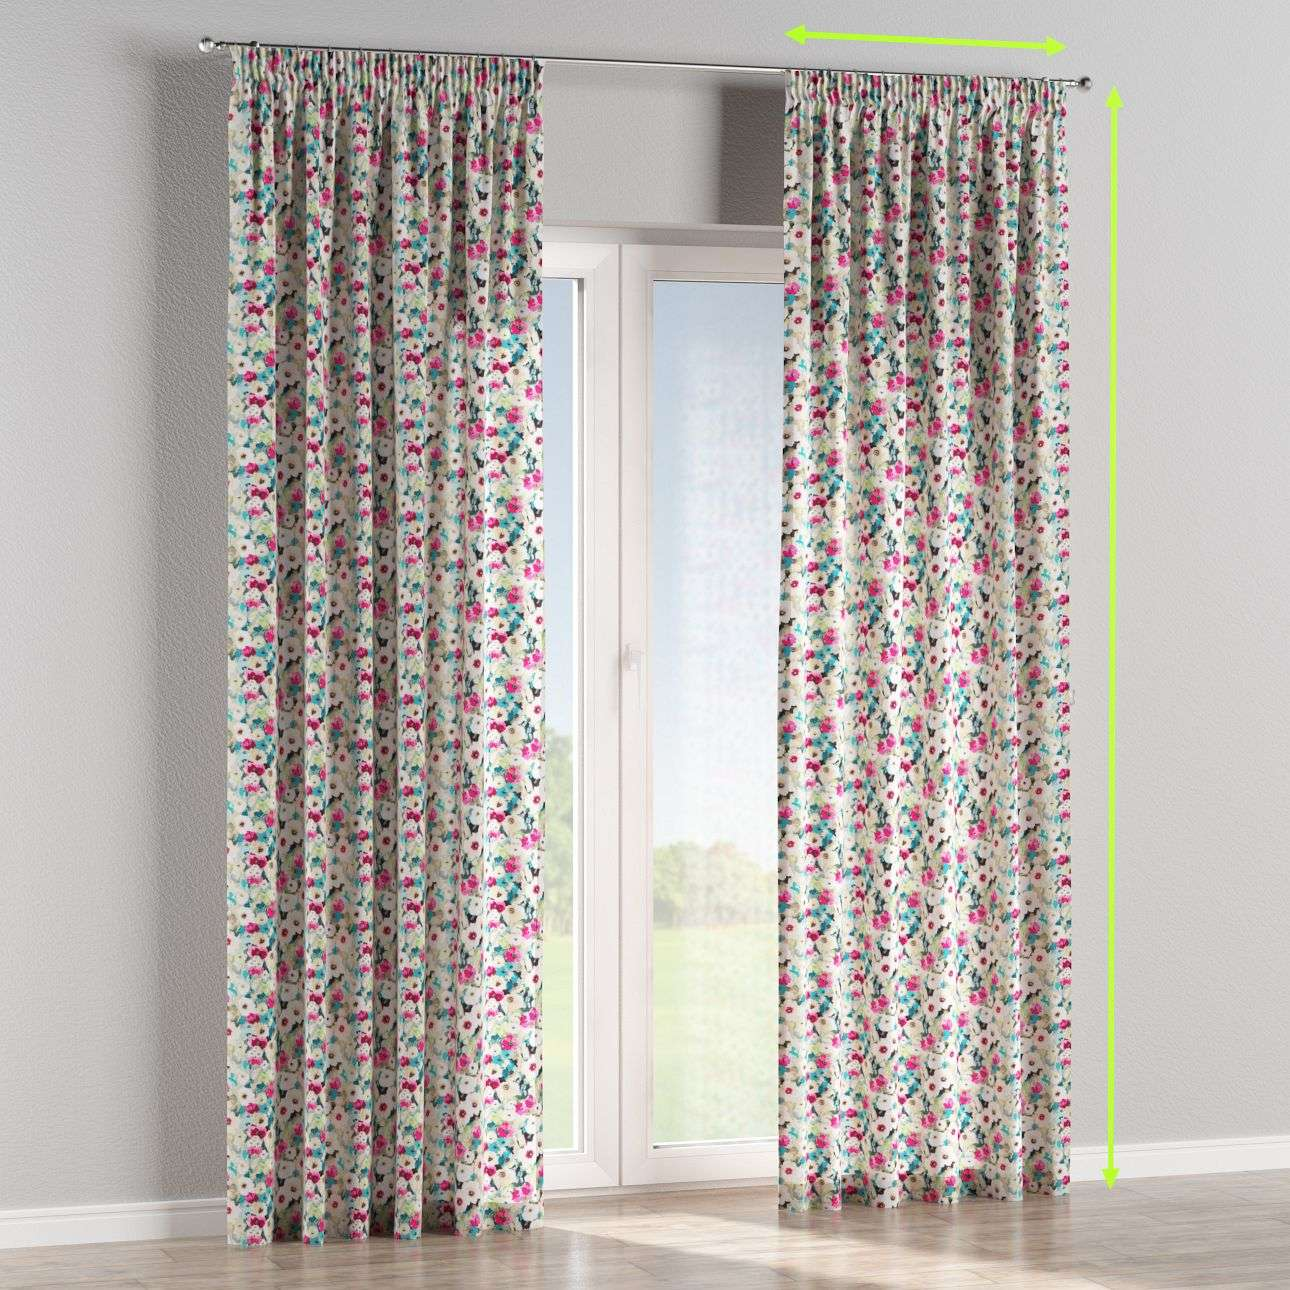 Pencil pleat lined curtains in collection Monet, fabric: 140-10